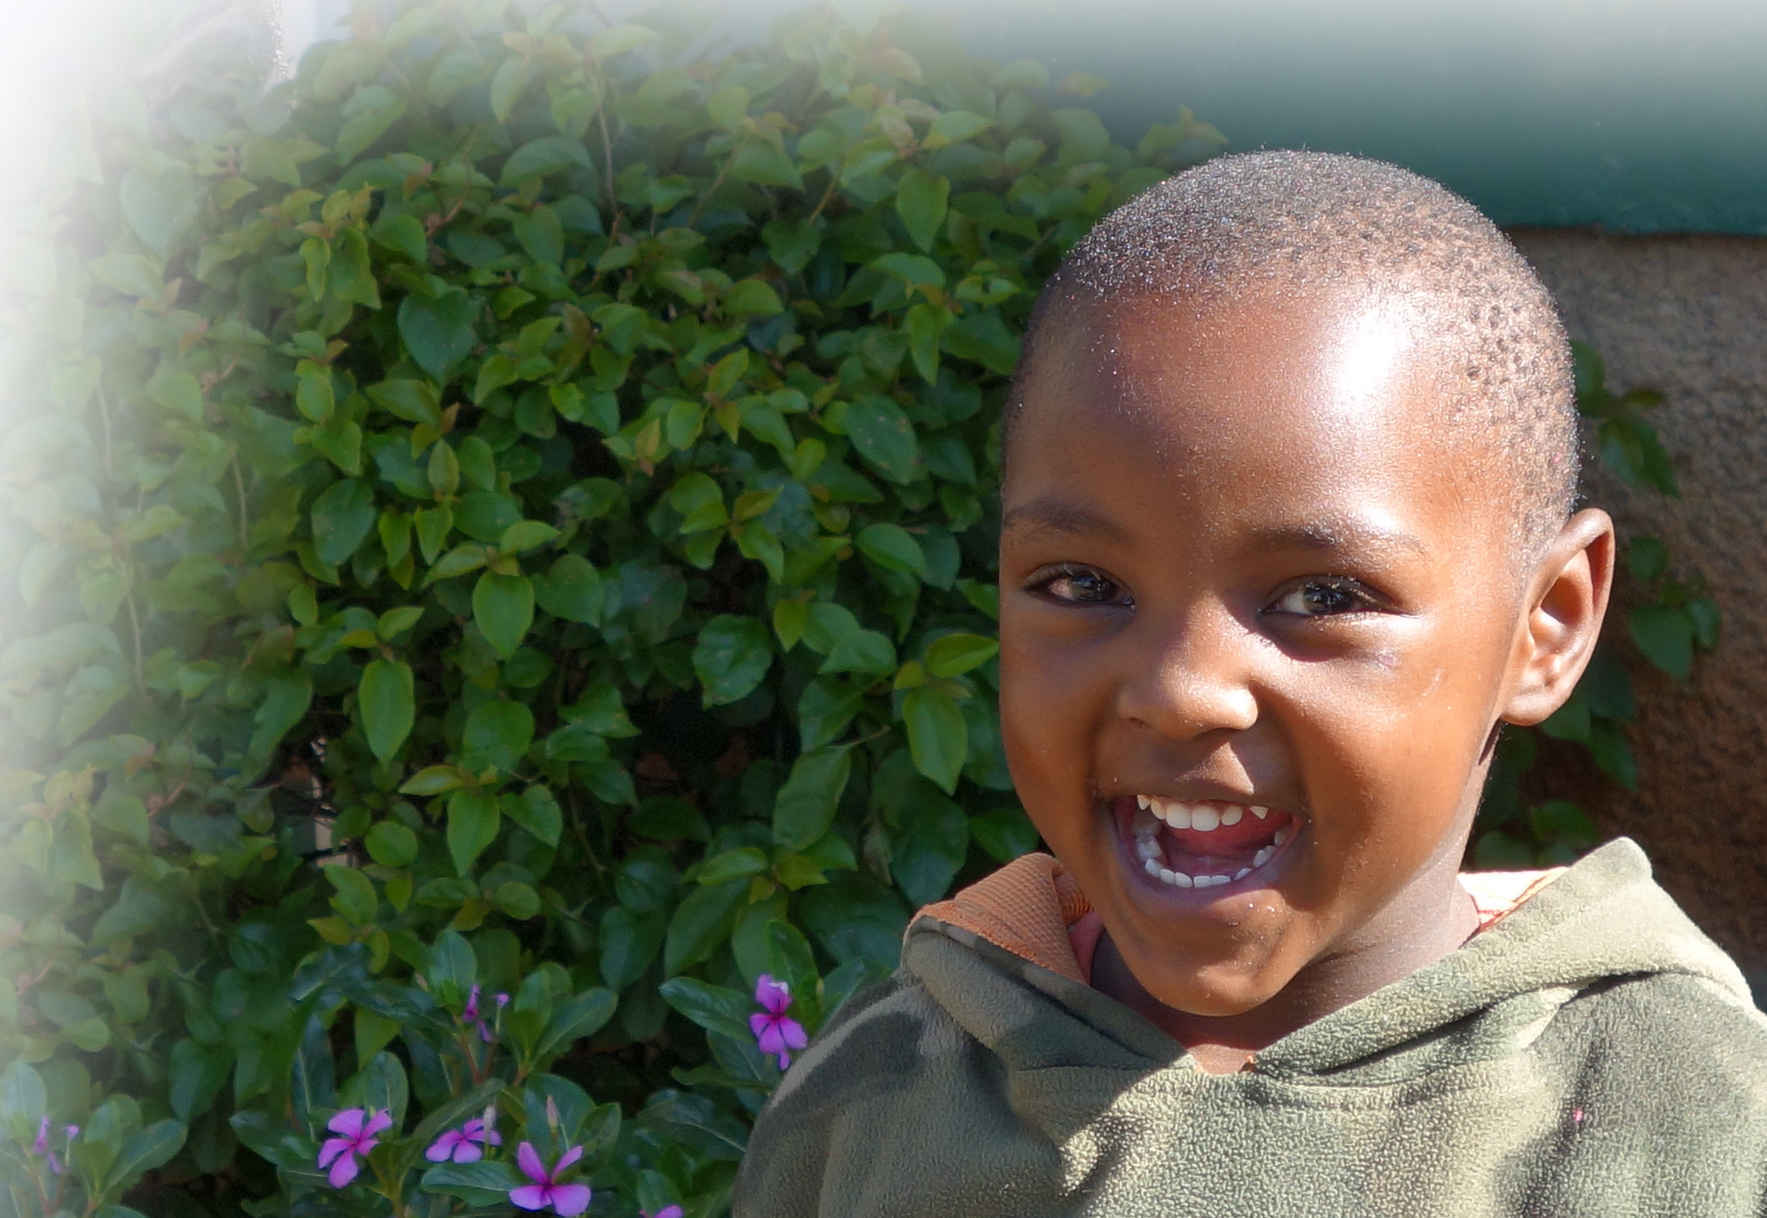 Donate Today to Help Rescue Orphaned Children image